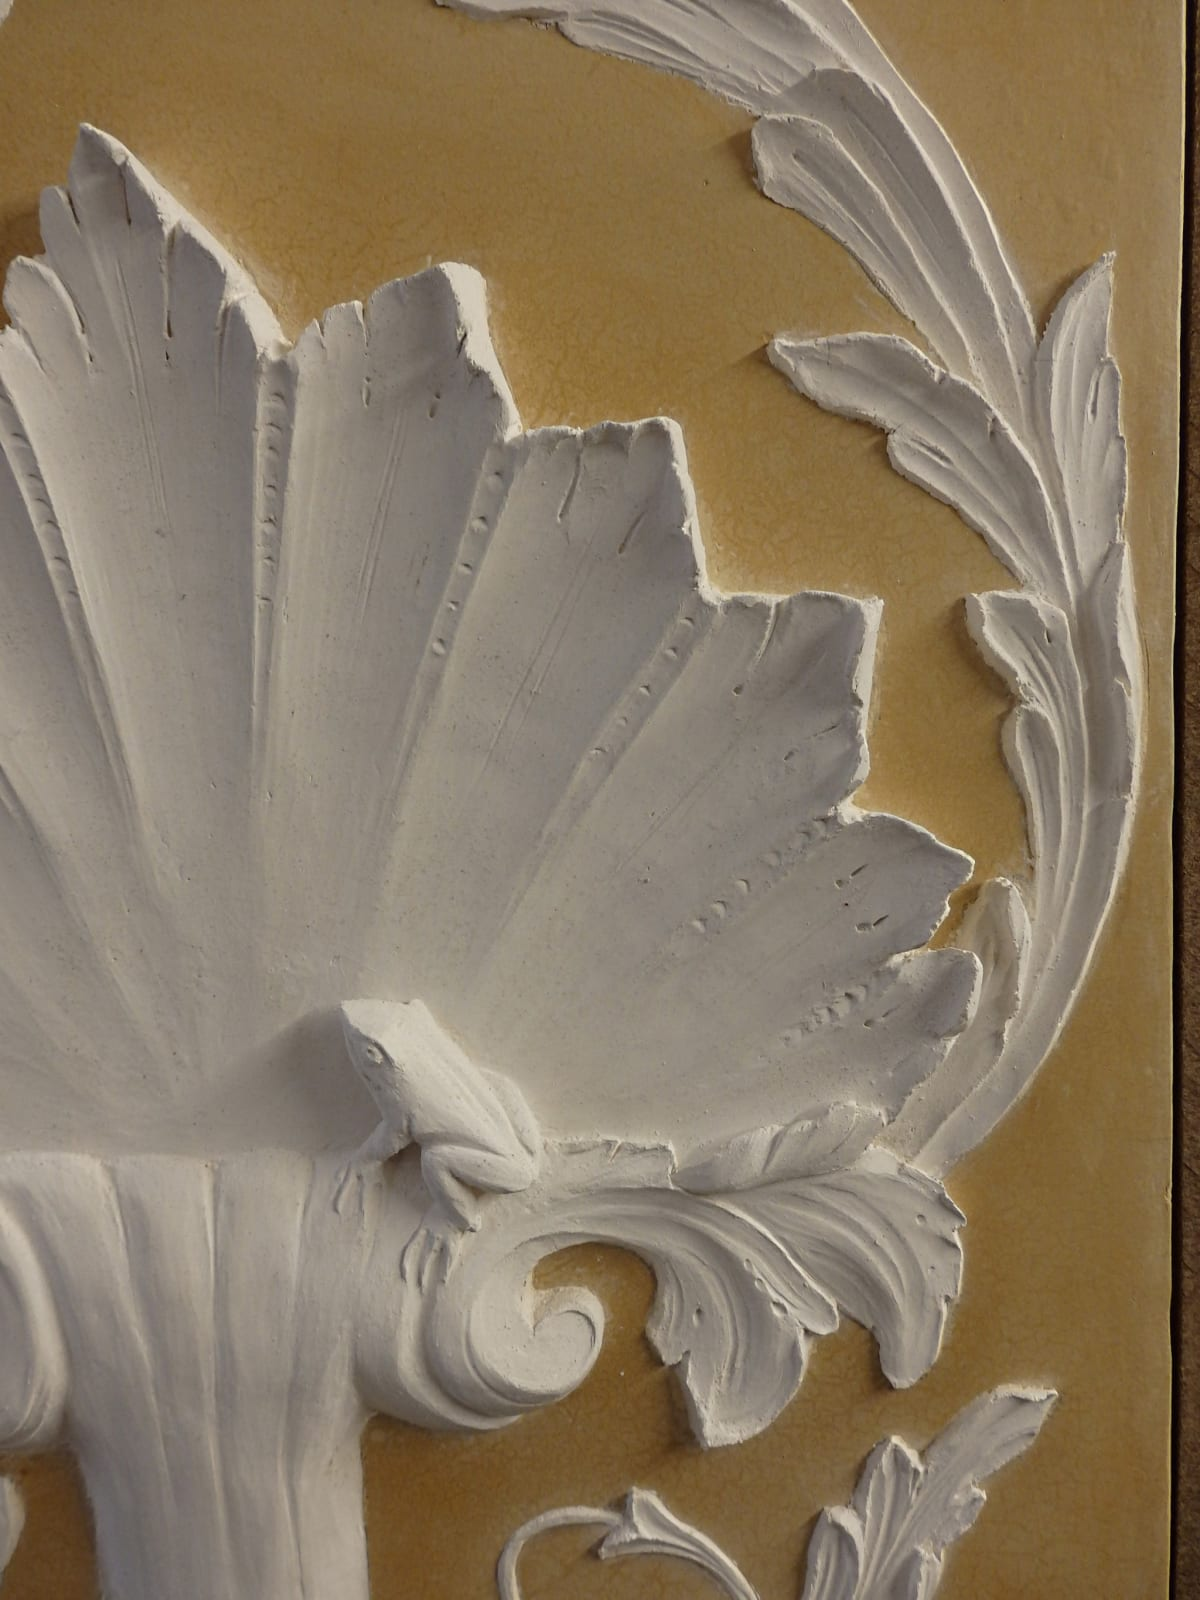 The Shell and the Frog Marmorino bas-relief sculpture